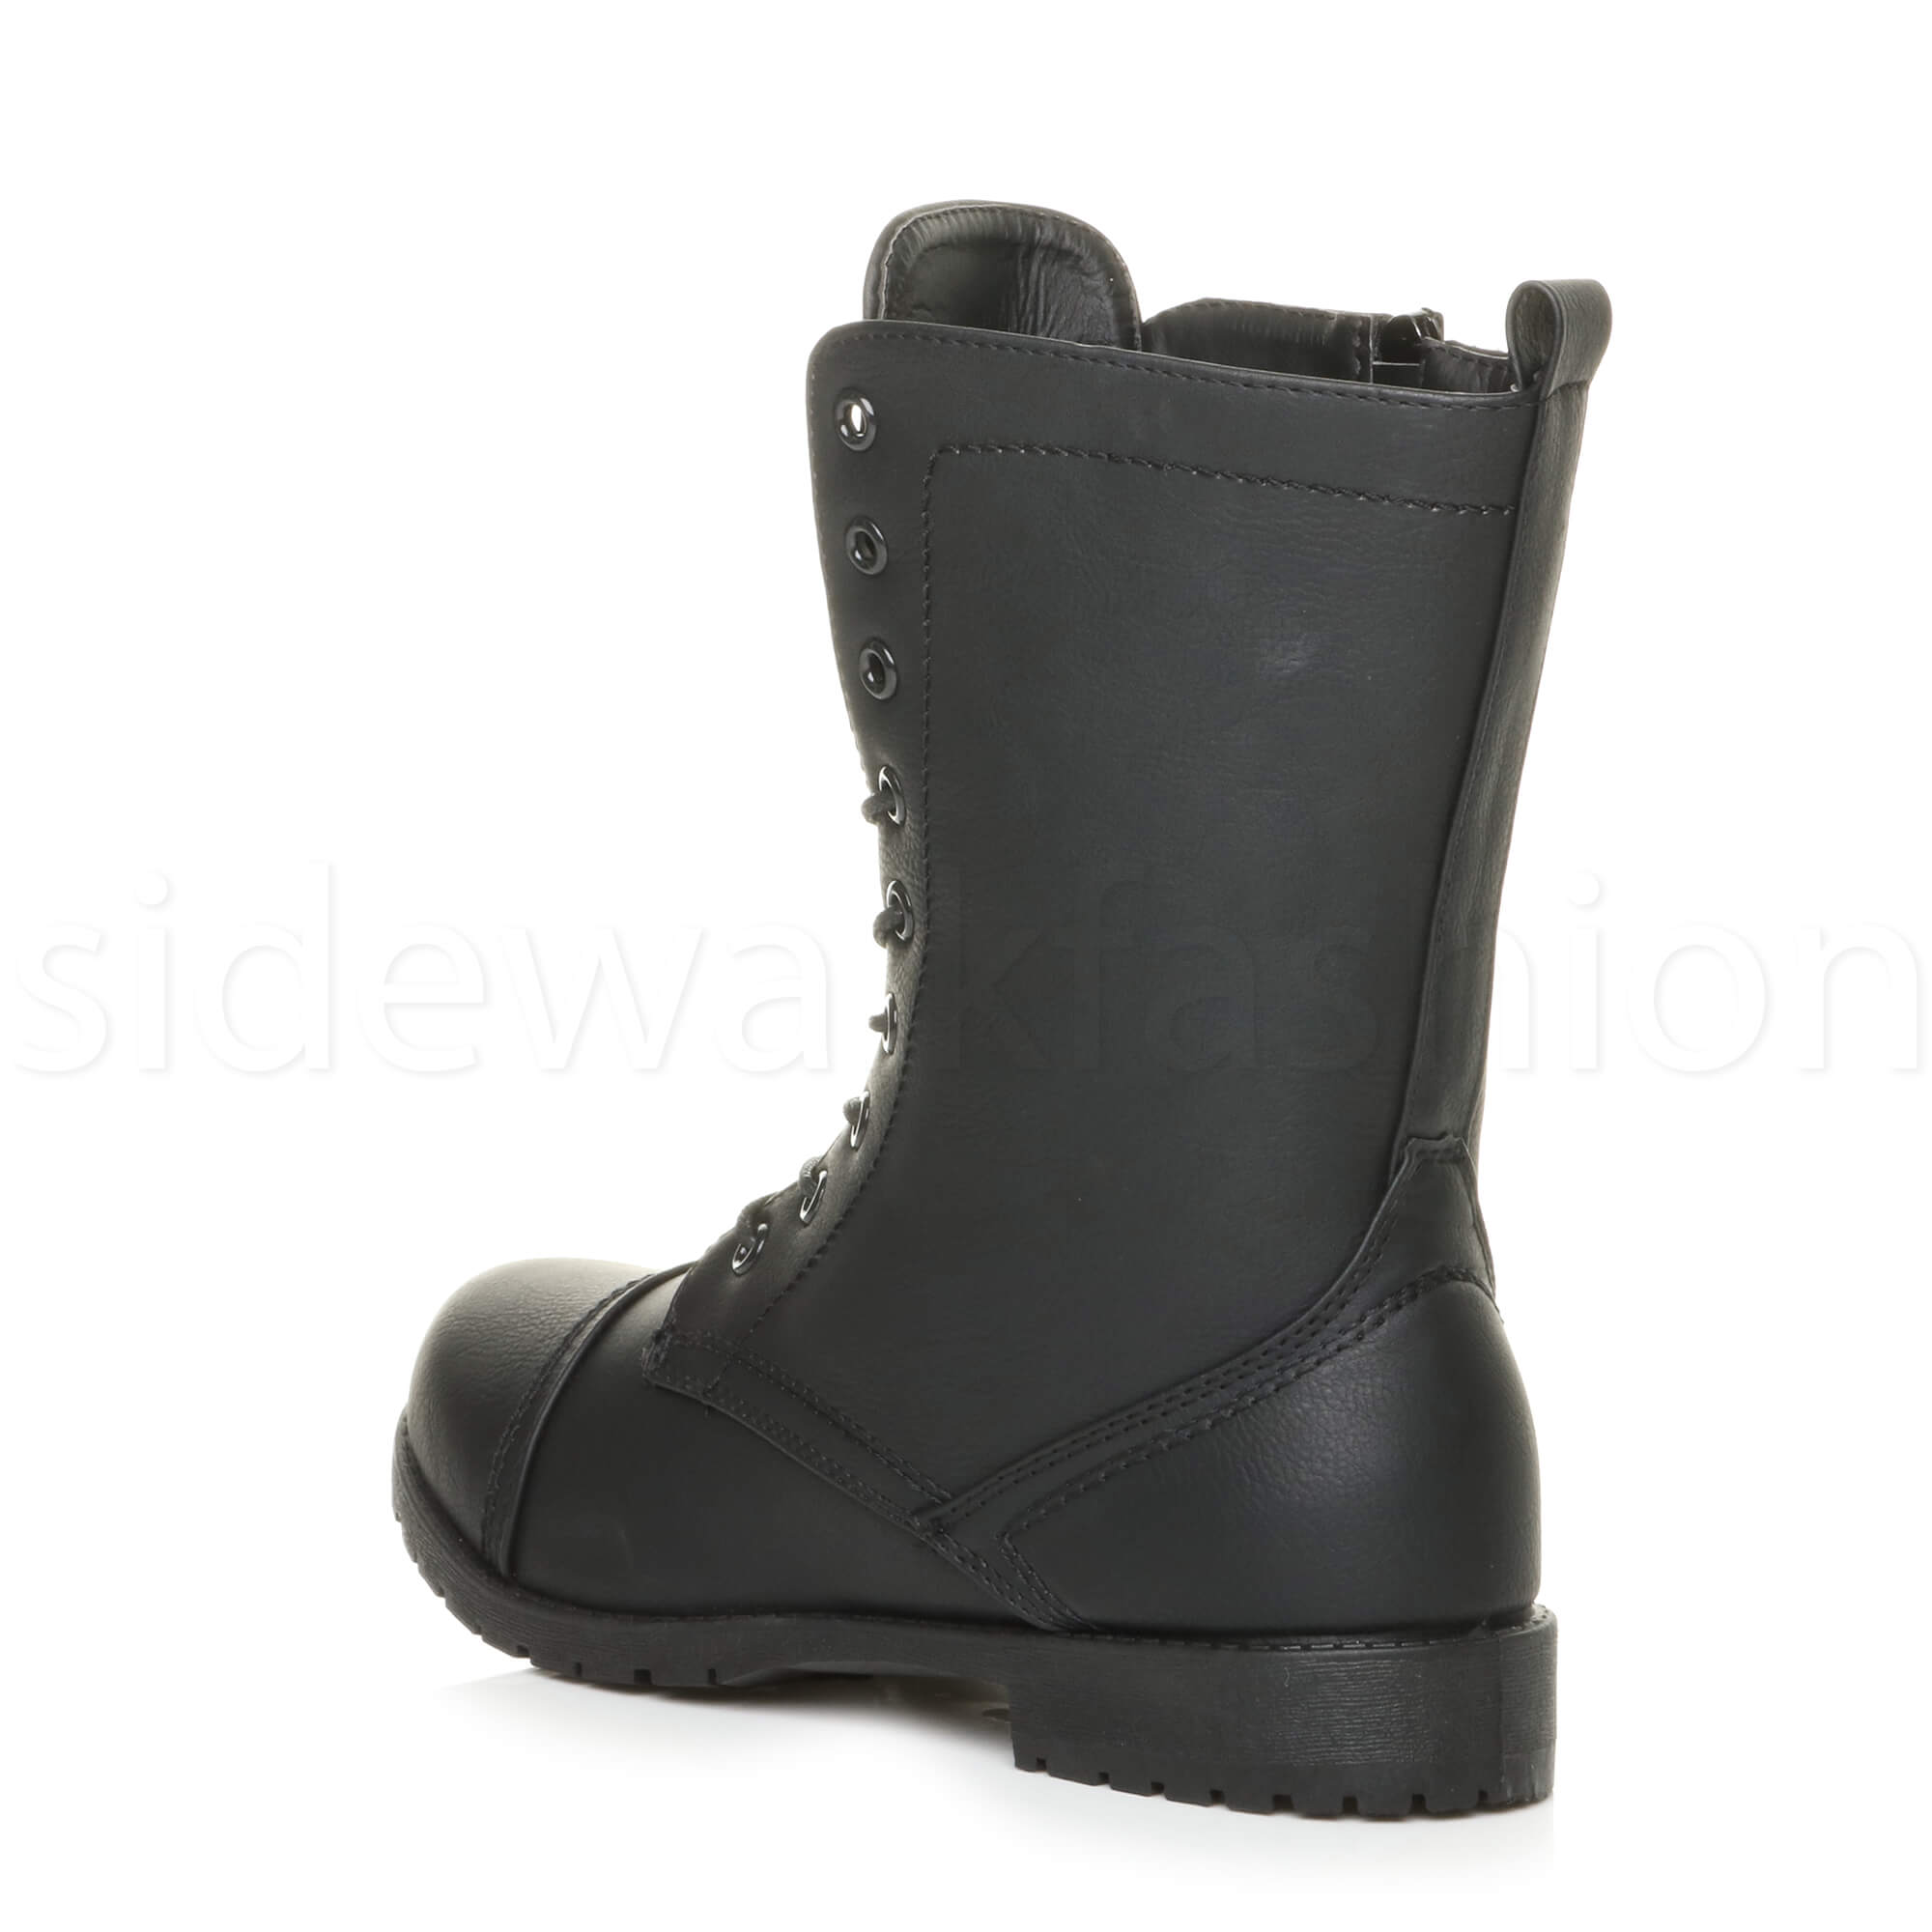 Womens-ladies-low-heel-flat-lace-up-zip-combat-biker-military-ankle-boots-size thumbnail 61